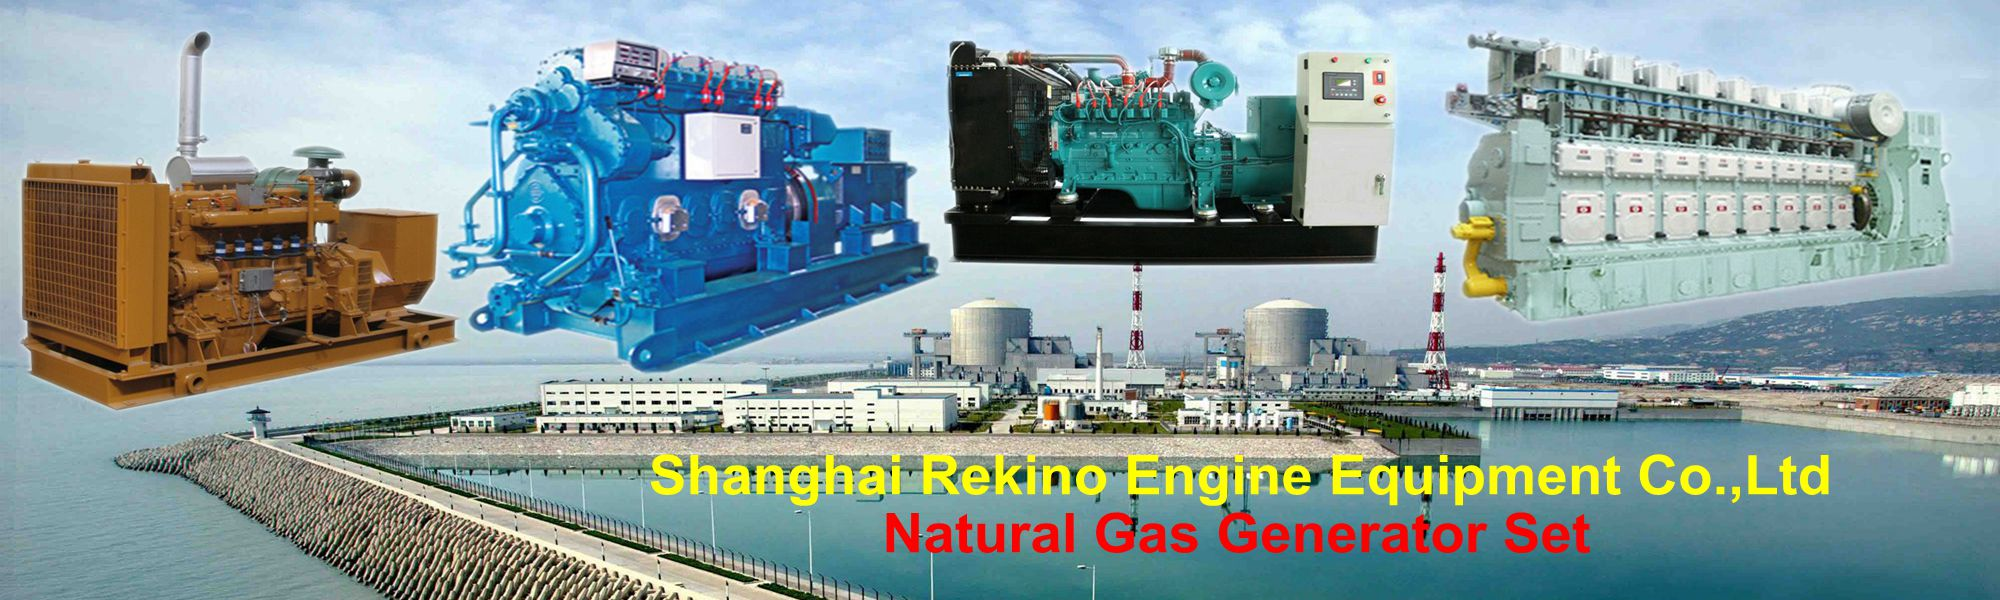 Natural Gas Generator Set